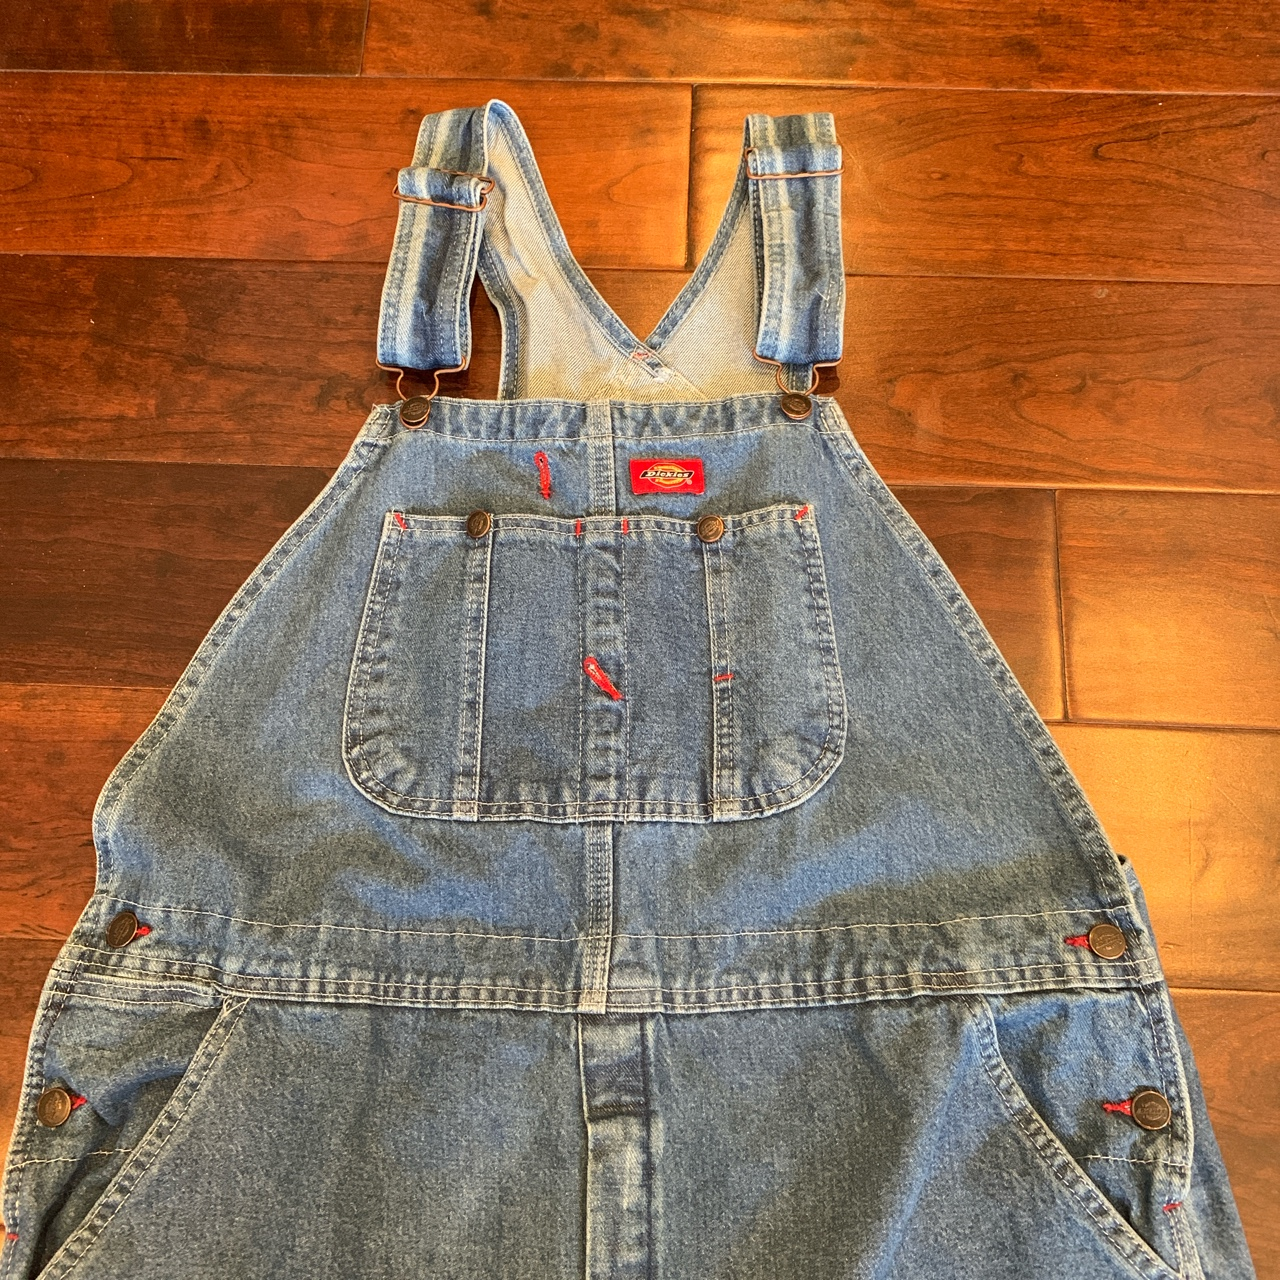 Product Image 1 - Dickies overalls size 36x34 #denim #dickies